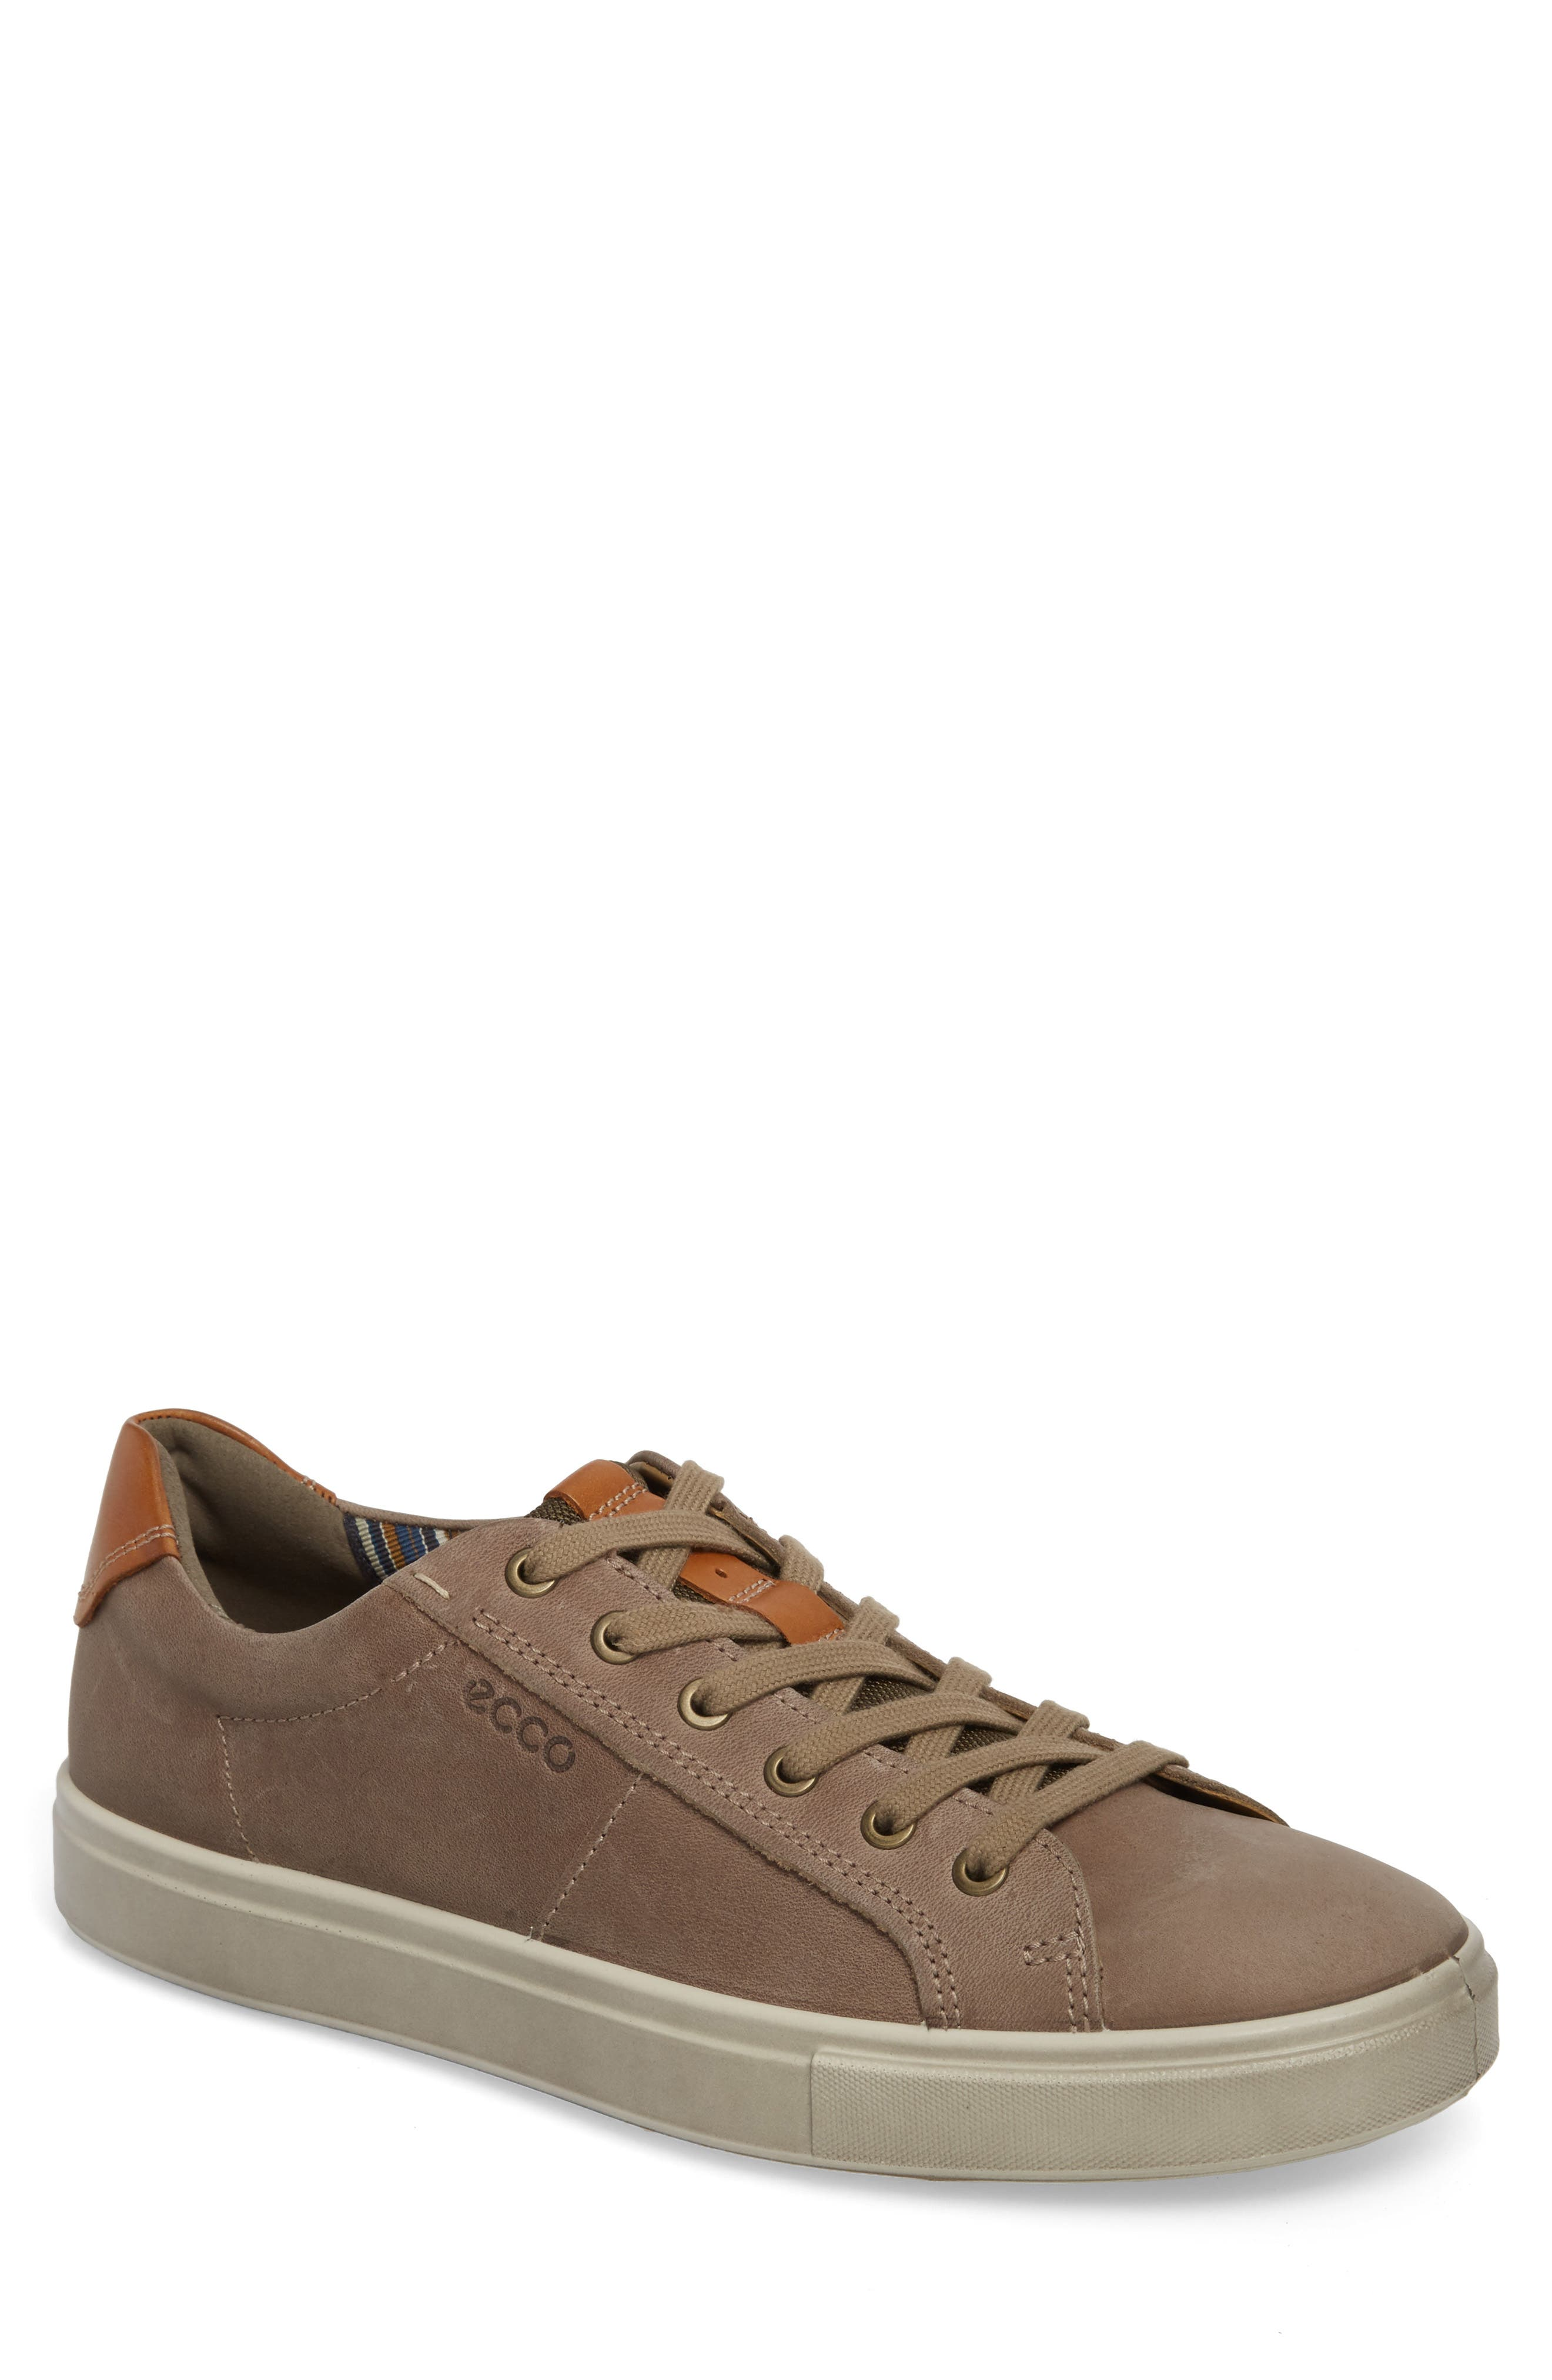 Kyle Sneaker,                         Main,                         color, Brown Leather